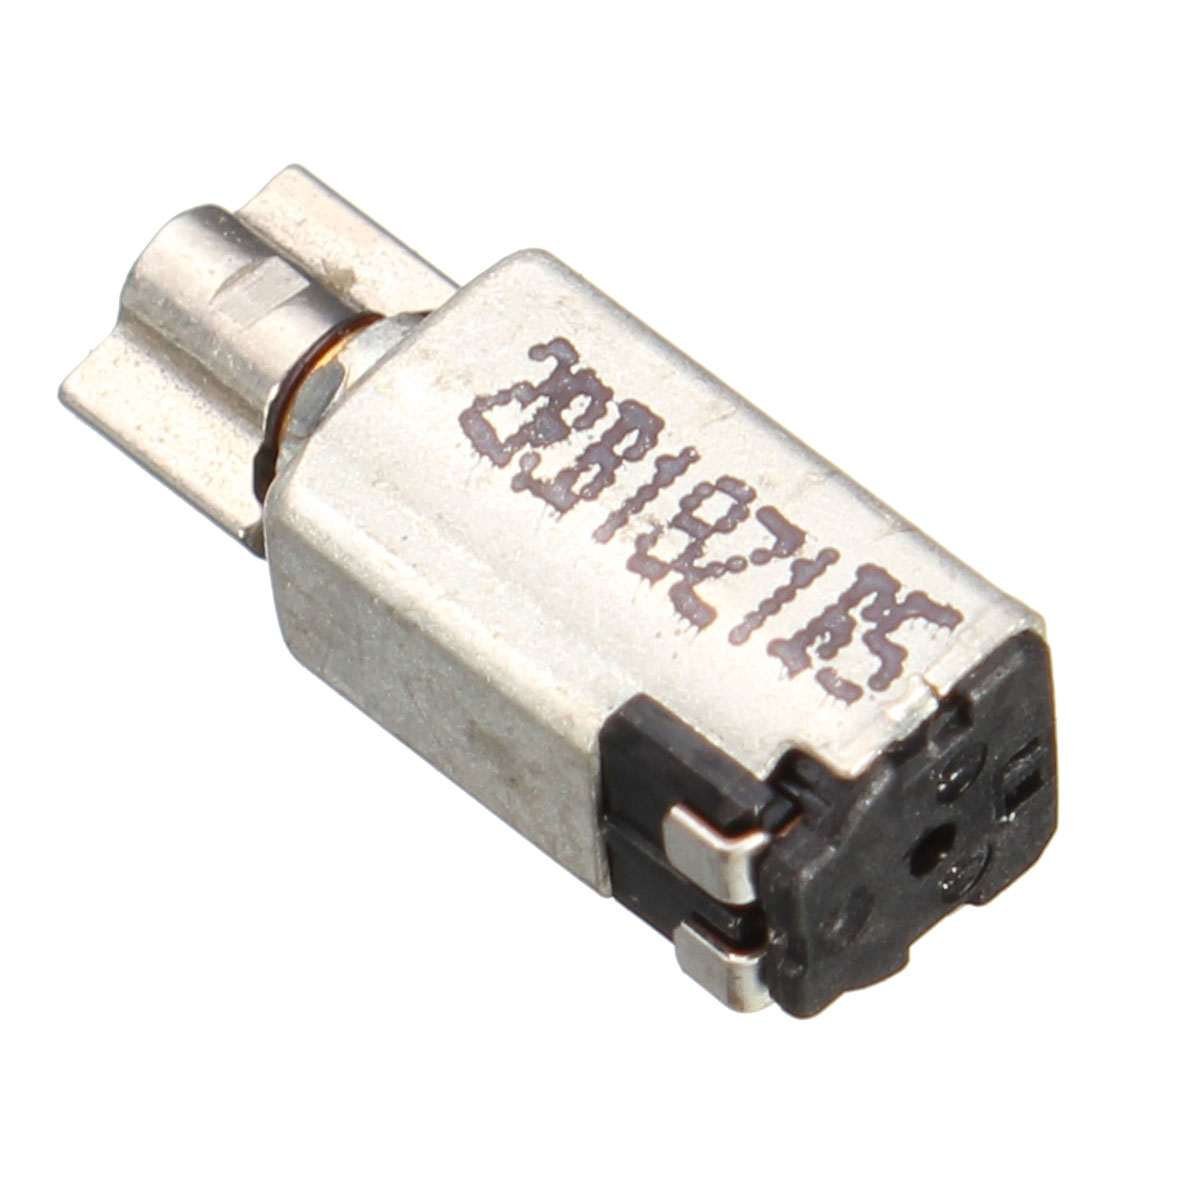 1 PC SMD Micro DC Vibration Motor 1500PRM 4.8MM x 4.5MM